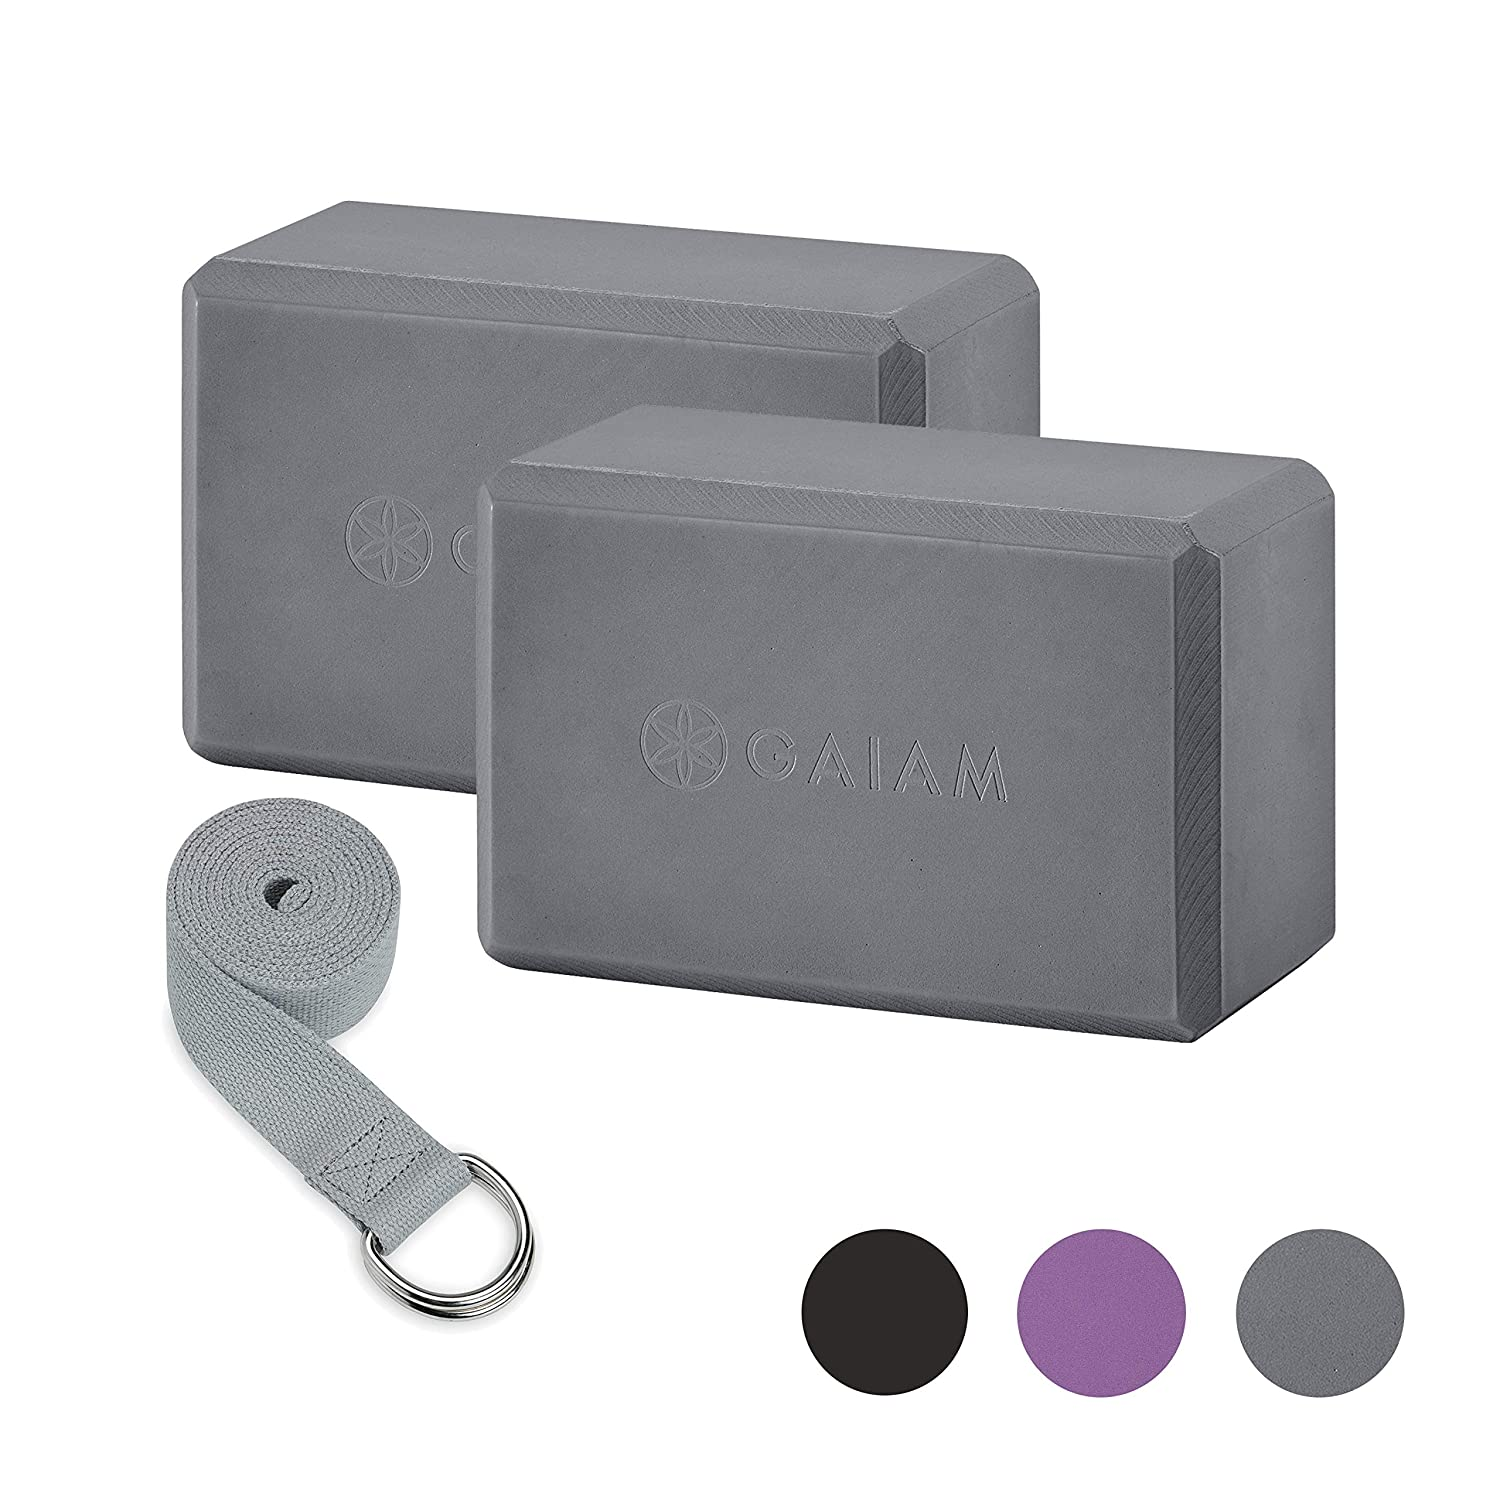 Gaiam Essentials Yoga Block 2 Pack   Yoga Strap Set